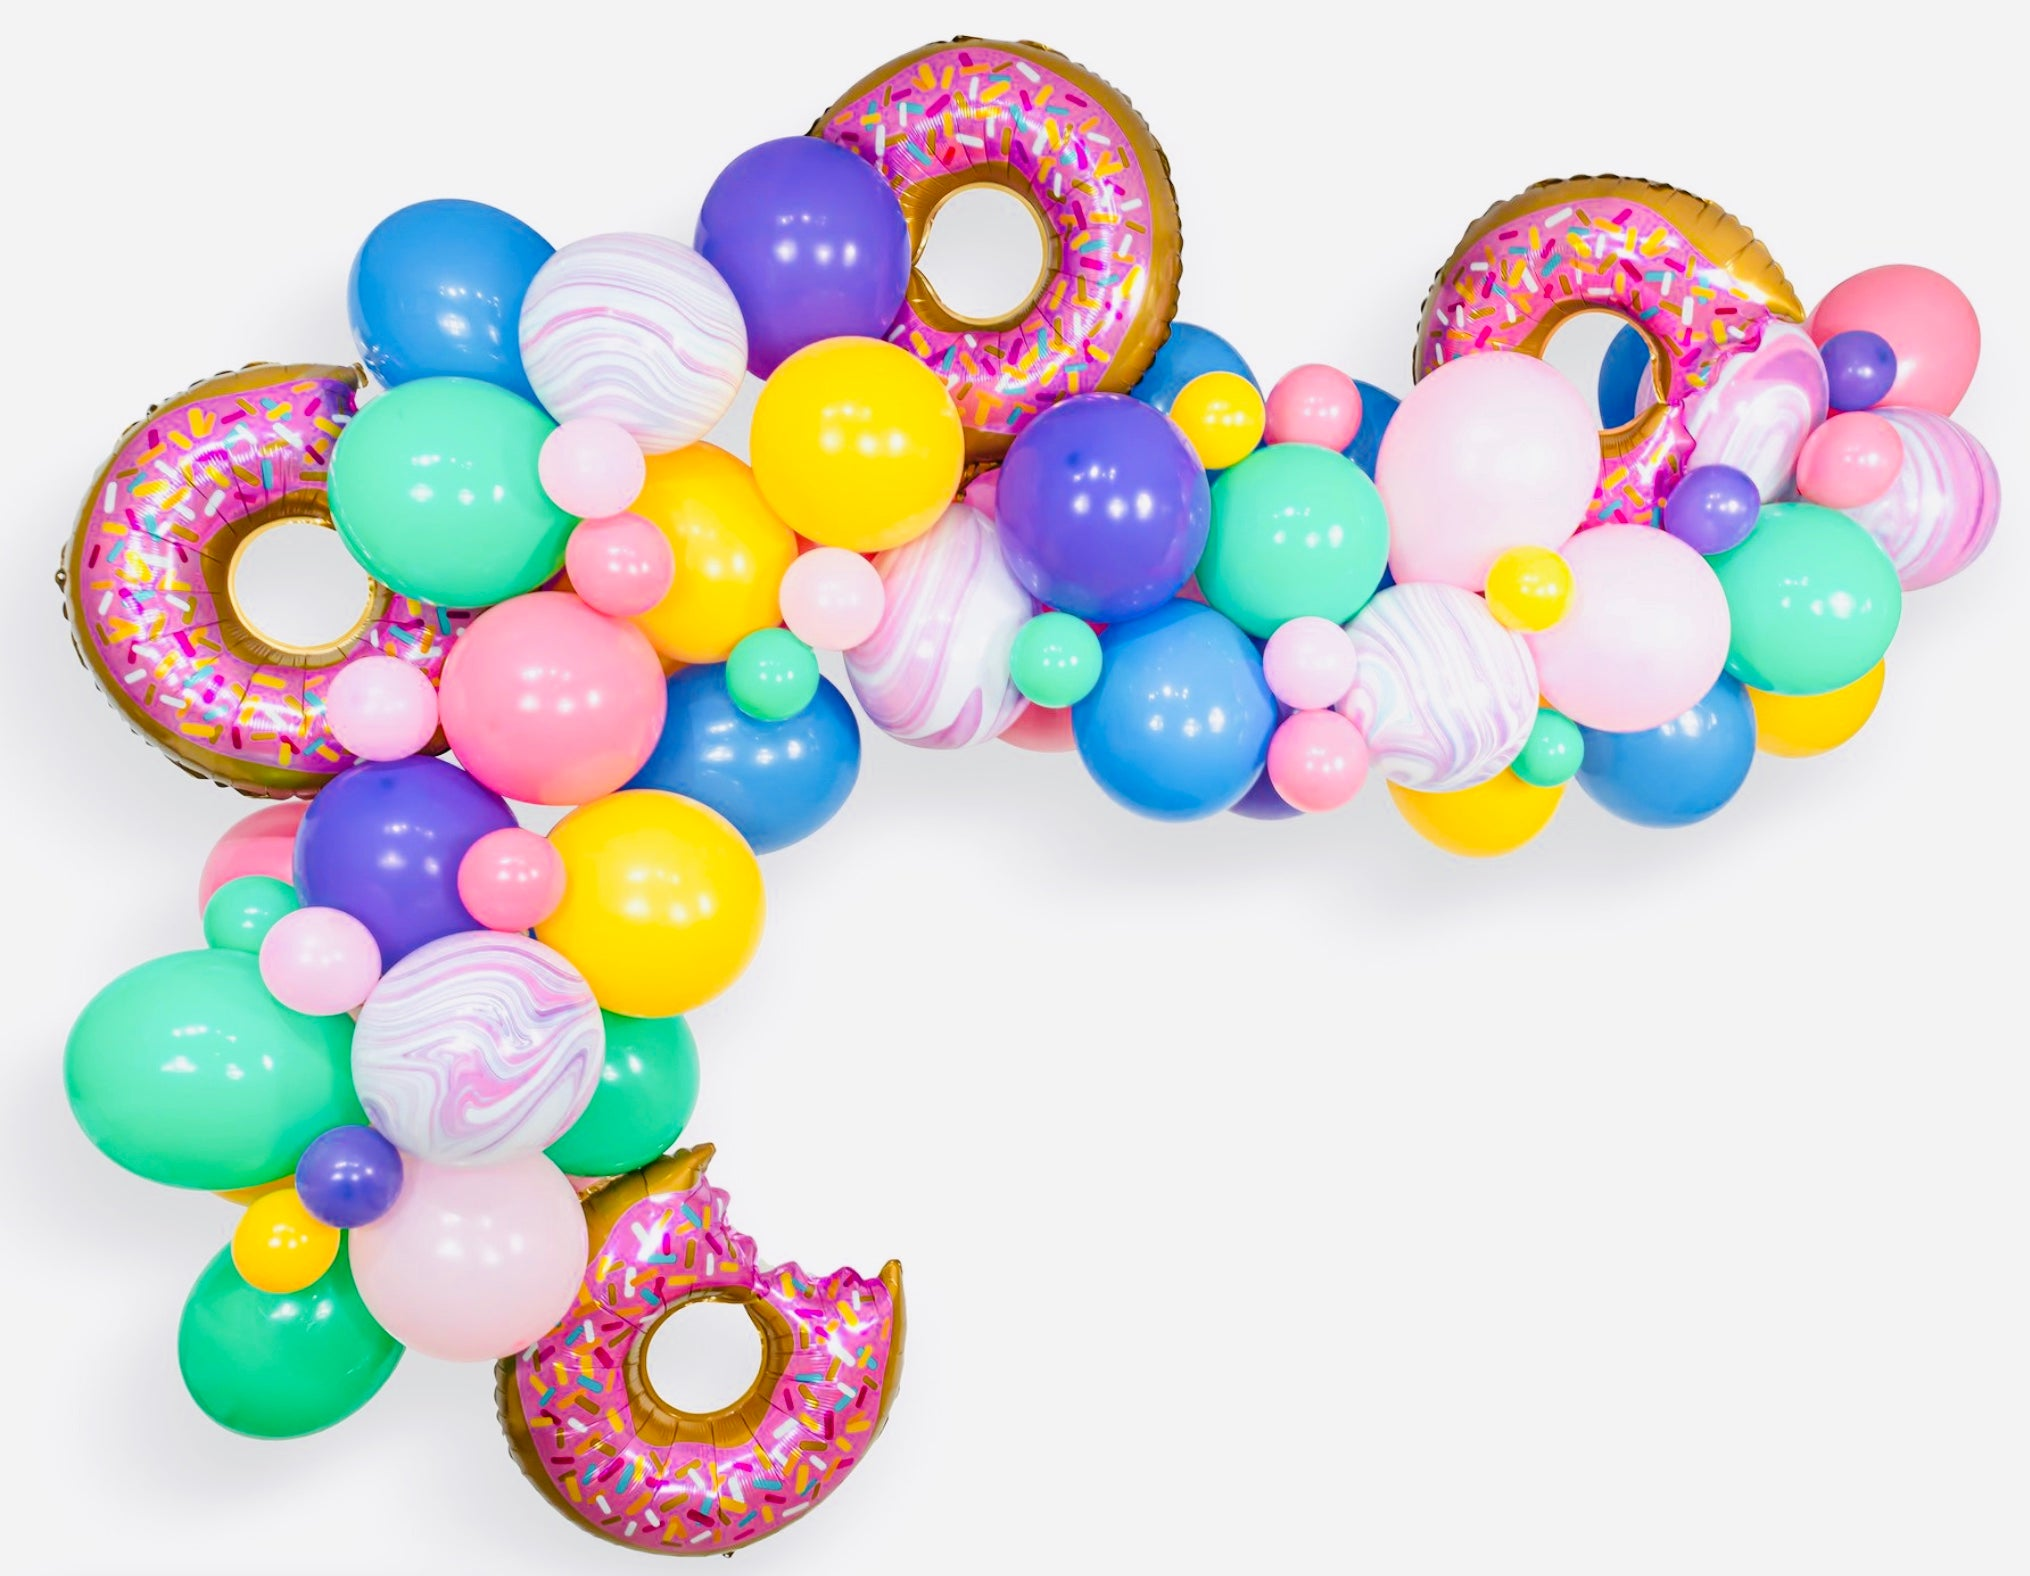 DONUTS FOREVER BALLOON GARLAND KIT